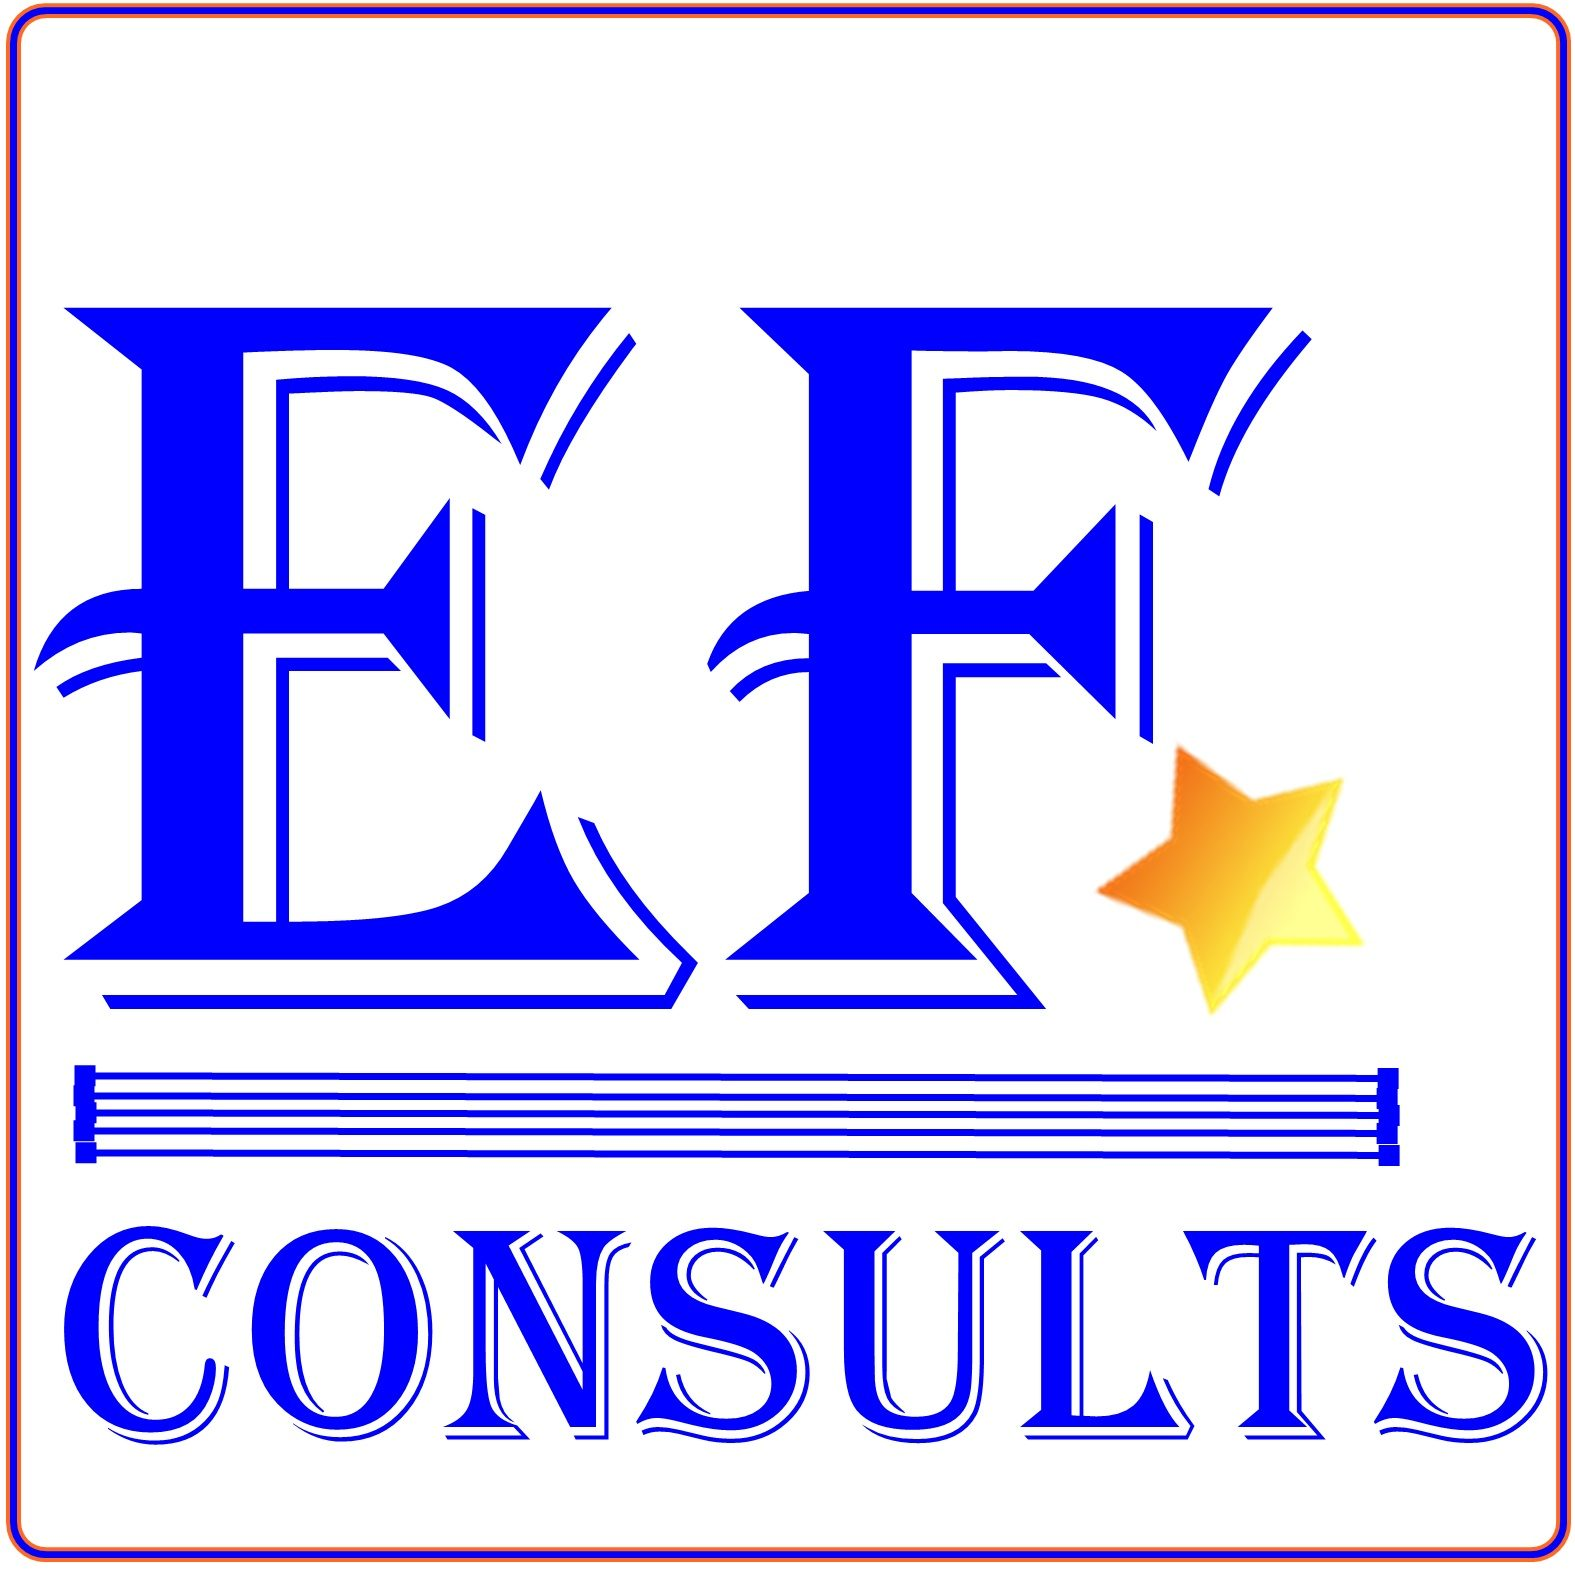 EF-CONSULTS